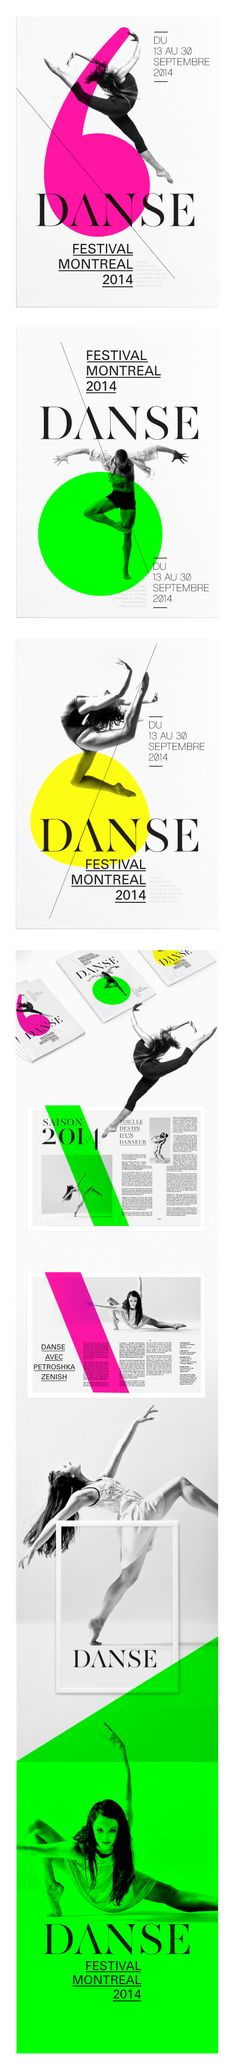 Saved by vf (vfong). Discover more of the best de, Poster, Festival, Danse, and Montreal inspiration on Designspiration Dm Poster, Poster Design, Poster Layout, Print Layout, Graphic Design Posters, Graphic Design Typography, Graphic Design Illustration, Graphic Design Inspiration, Design Ideas